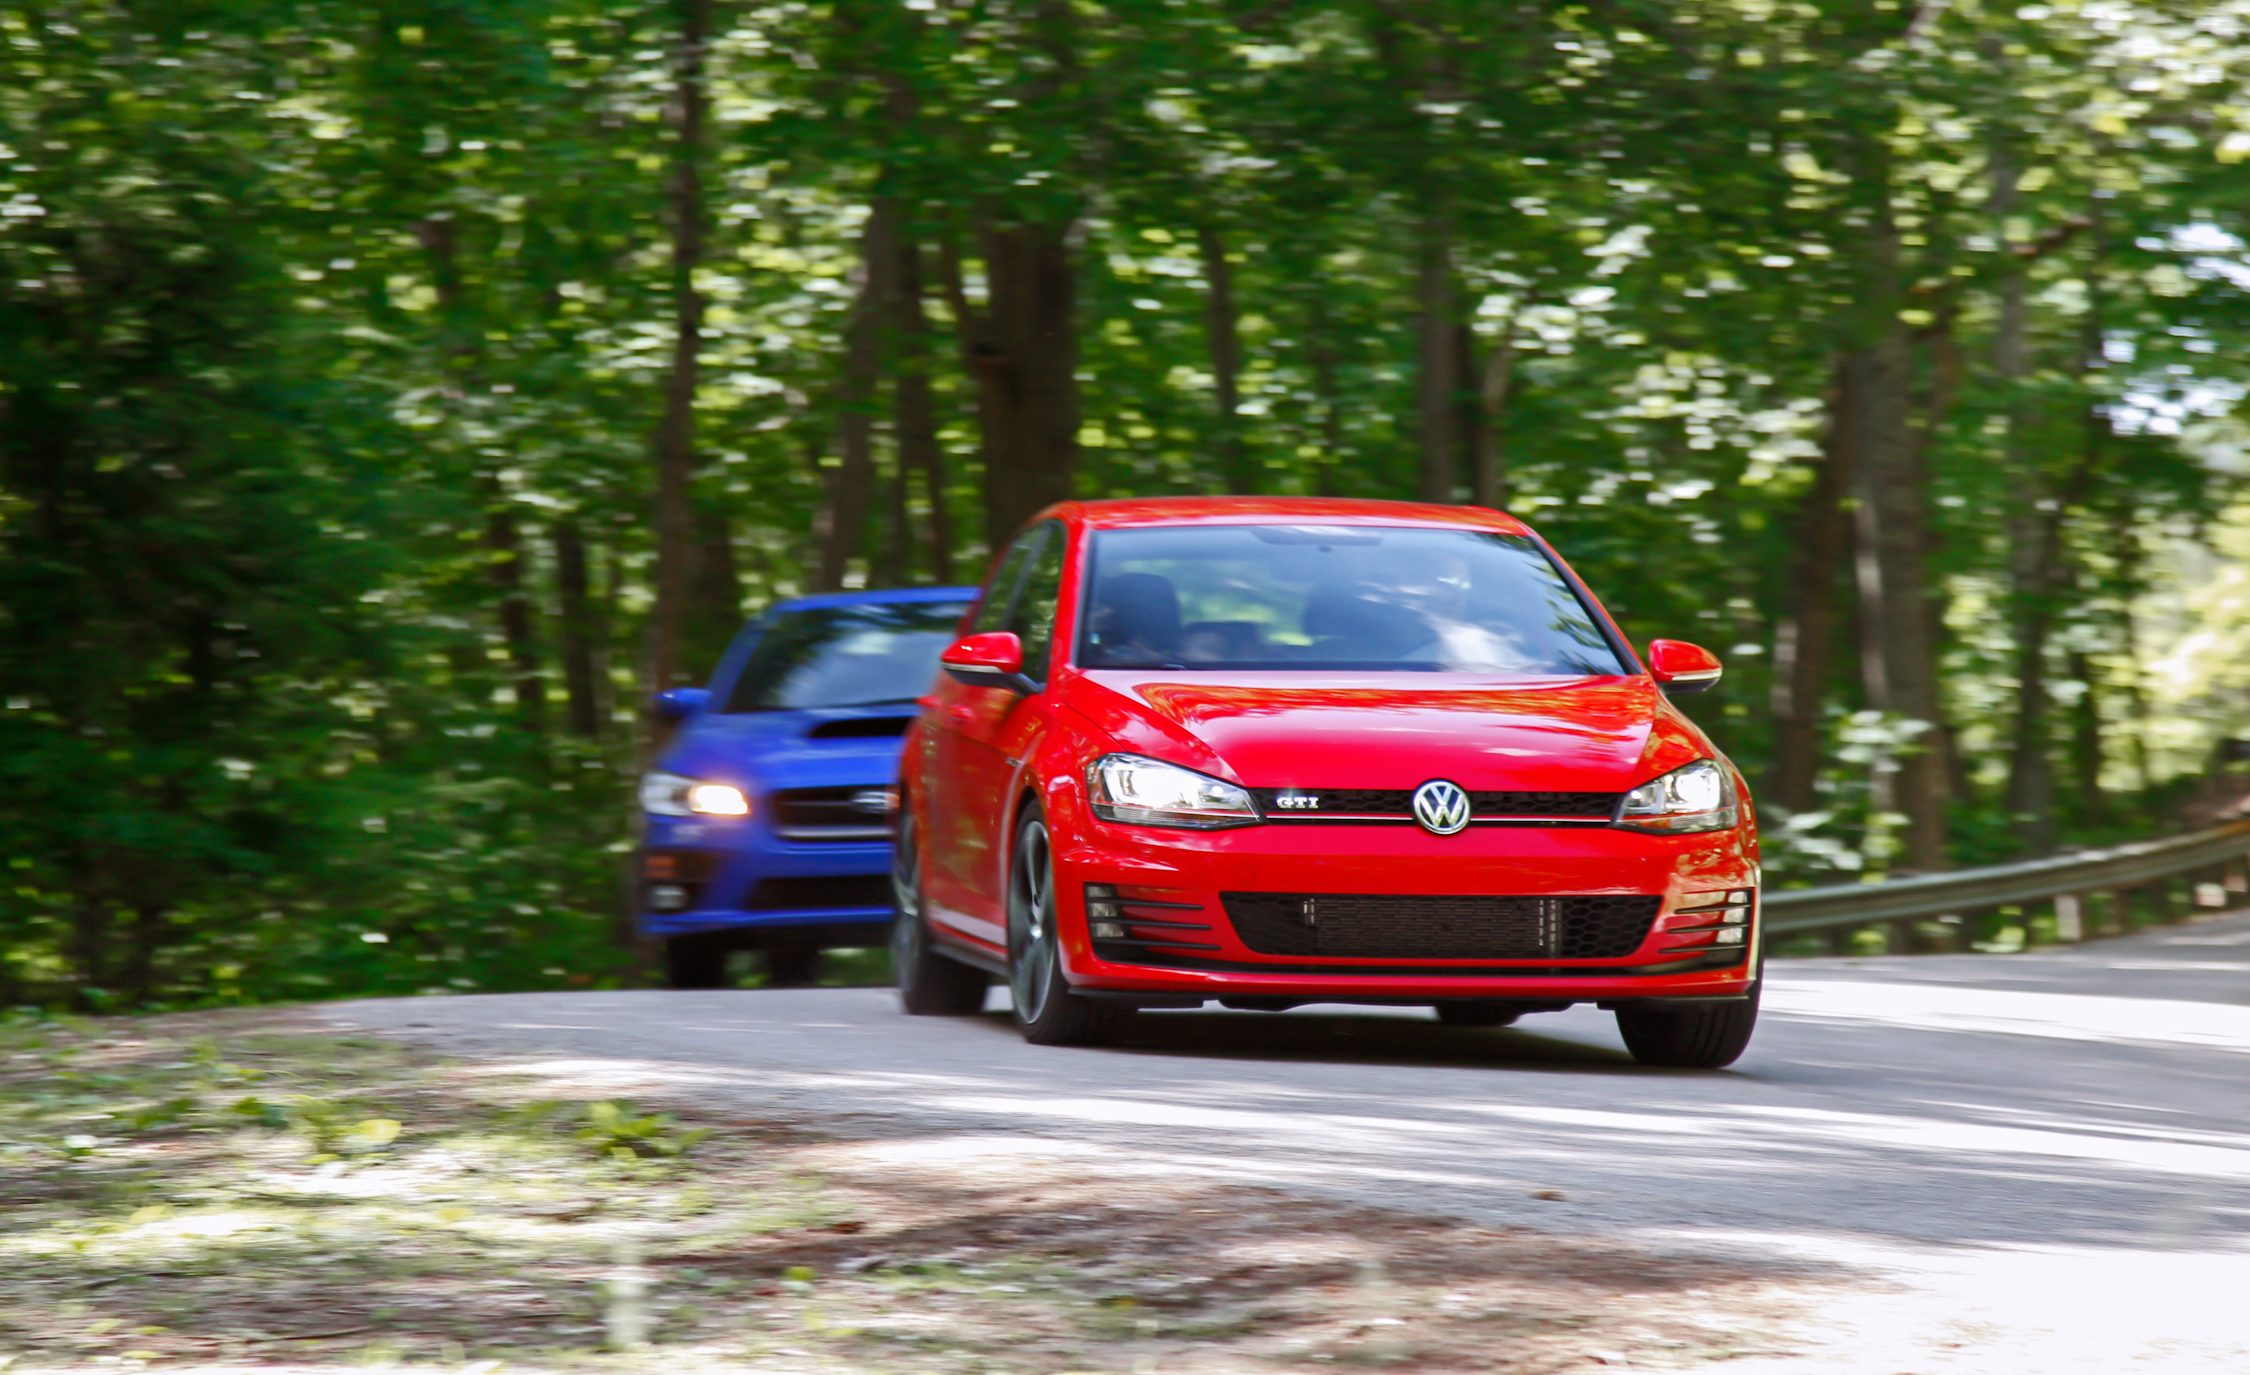 2015 Subaru WRX And 2015 Volkswagen GTI 5 Door (Photo 3 of 55)